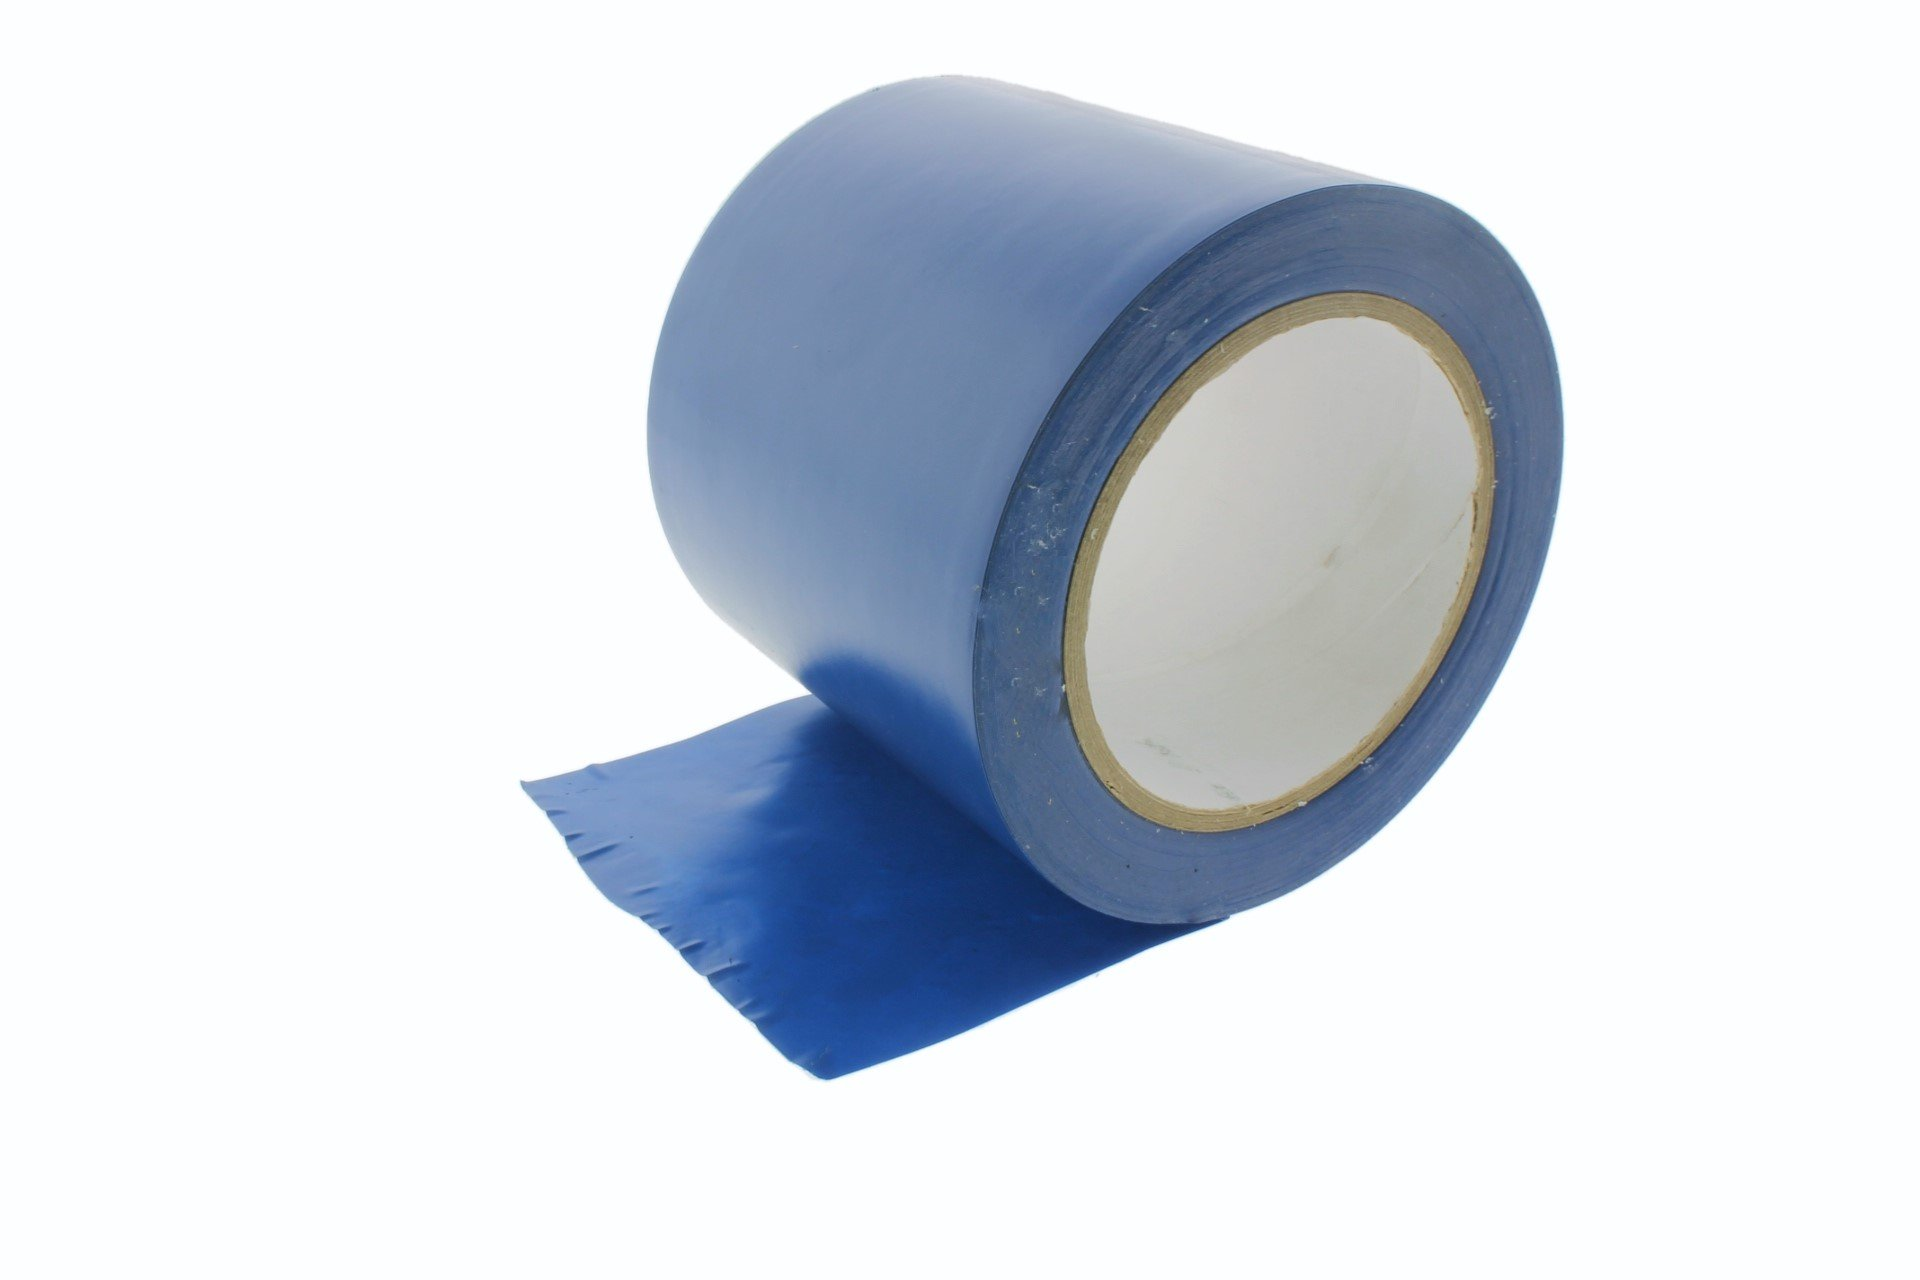 4'' General Purpose Royal Blue Insulated Adhesive PVC Vinyl Sealing Coding Marking Electrical Tape (3.76 in 96MM) 36 yard 7 mil